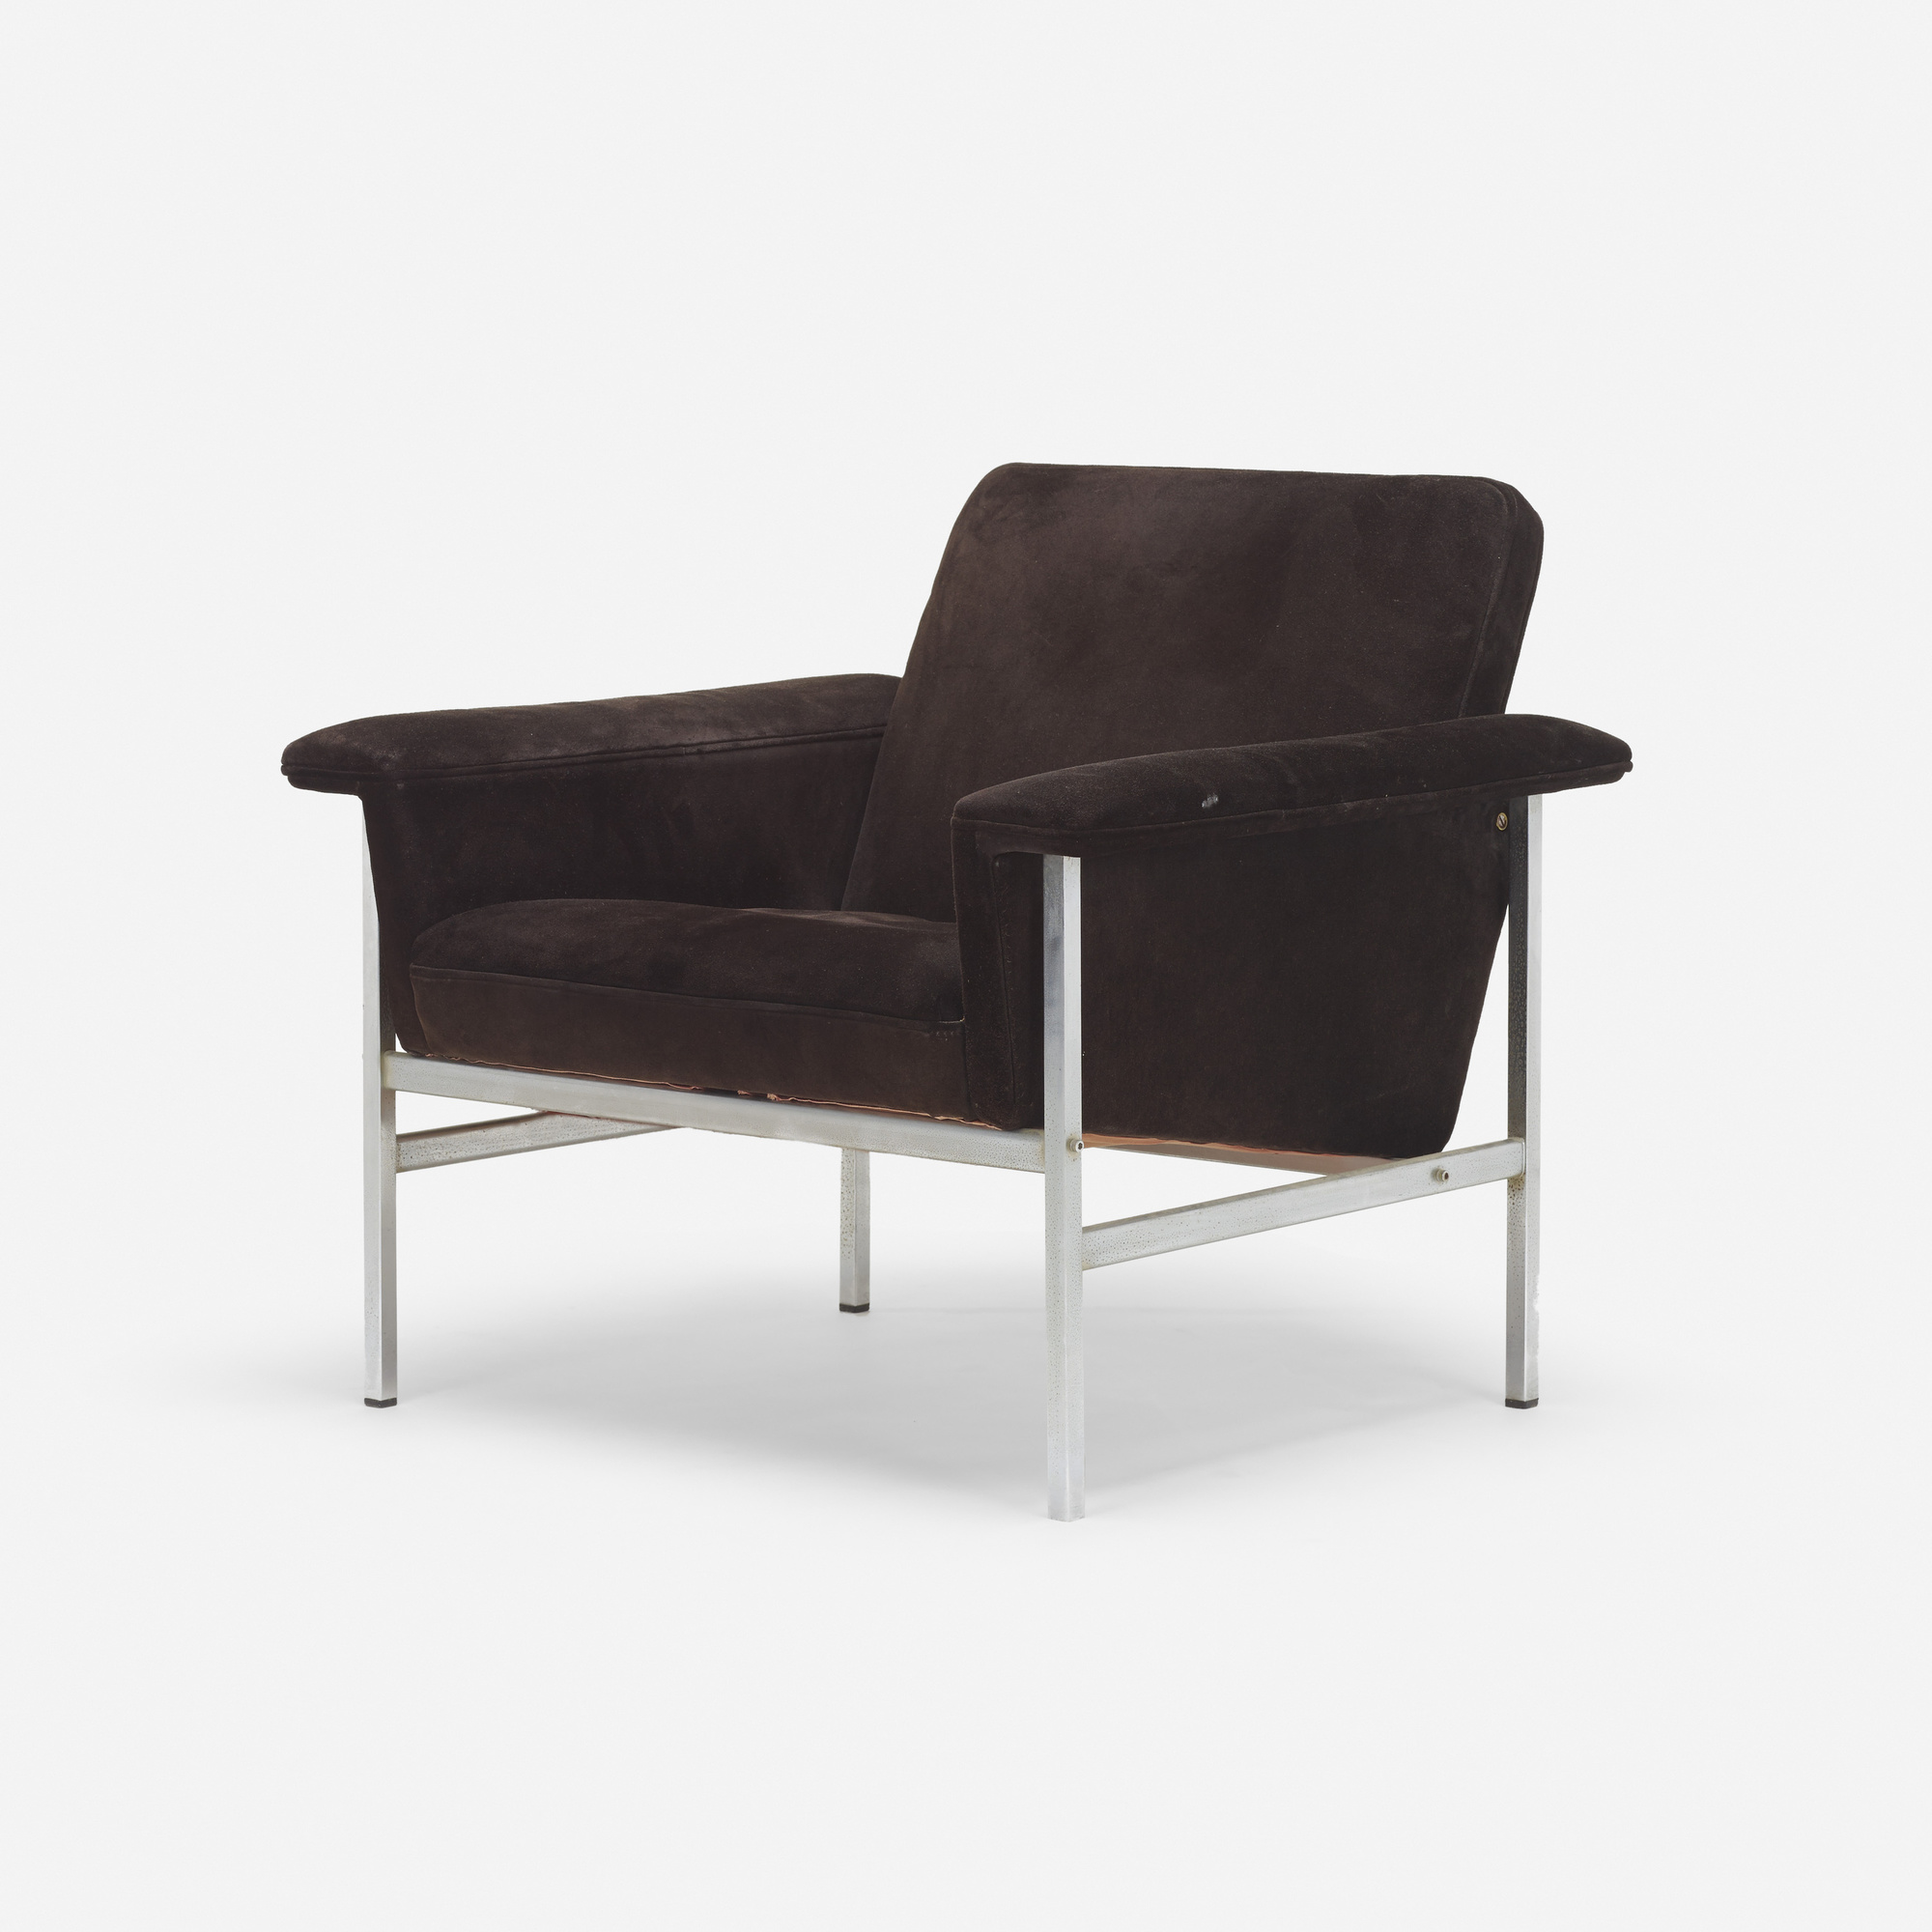 607: Modernist / lounge chair (1 of 2)